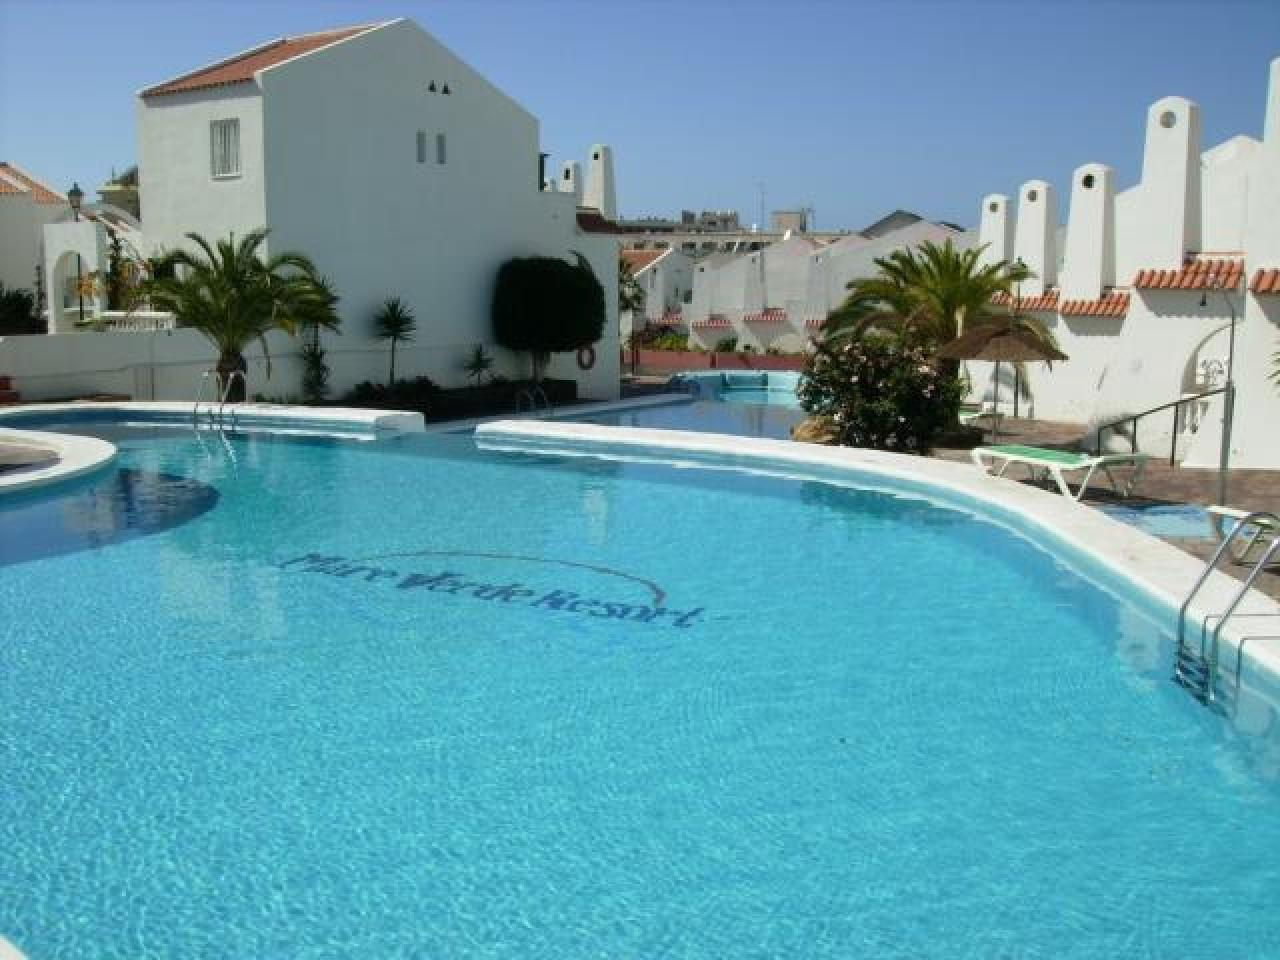 Apartment in Tenerife for sale » #373 - 5